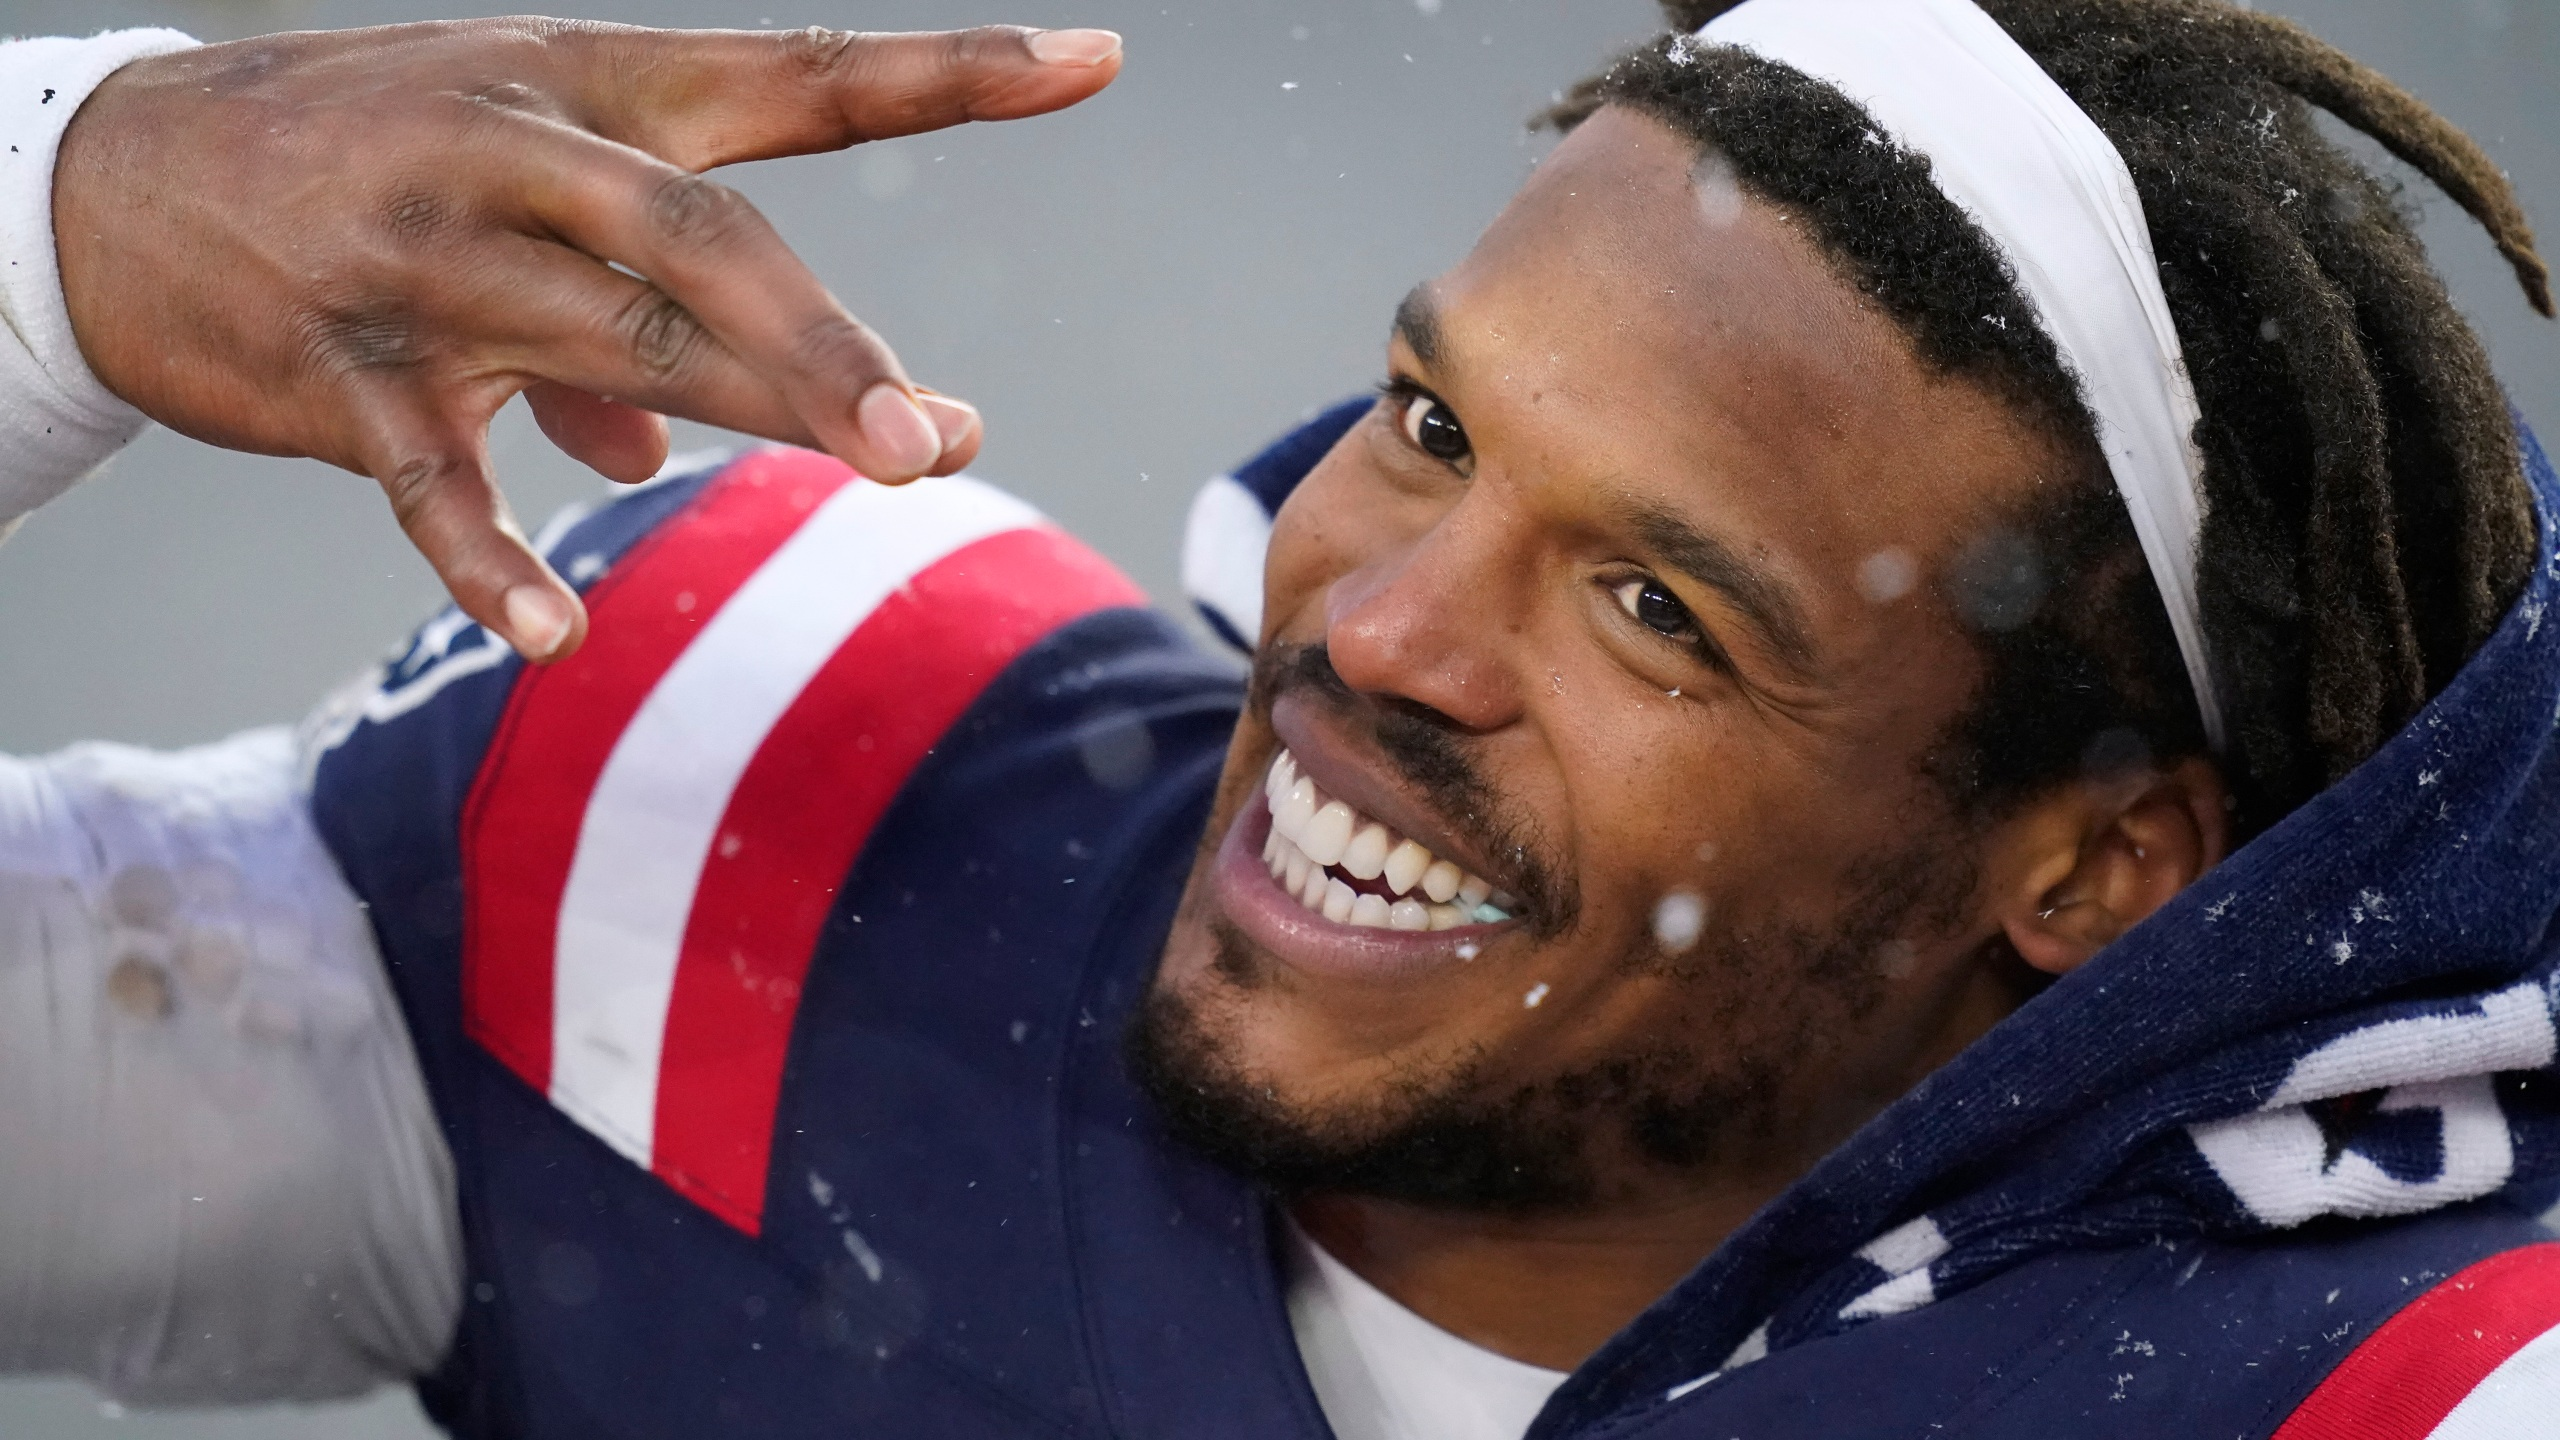 FILE - In this Jan. 3, 2021, file photo, New England Patriots quarterback Cam Newton leaves the field after an NFL football game against the New York Jets in Foxborough, Mass. The New England Patriots are completing an agreement to re-sign free-agent quarterback Cam Newton, a person with knowledge of the negotiations told The Associated Press, Friday, March 12, 2021. (AP Photo/Elise Amendola, File)